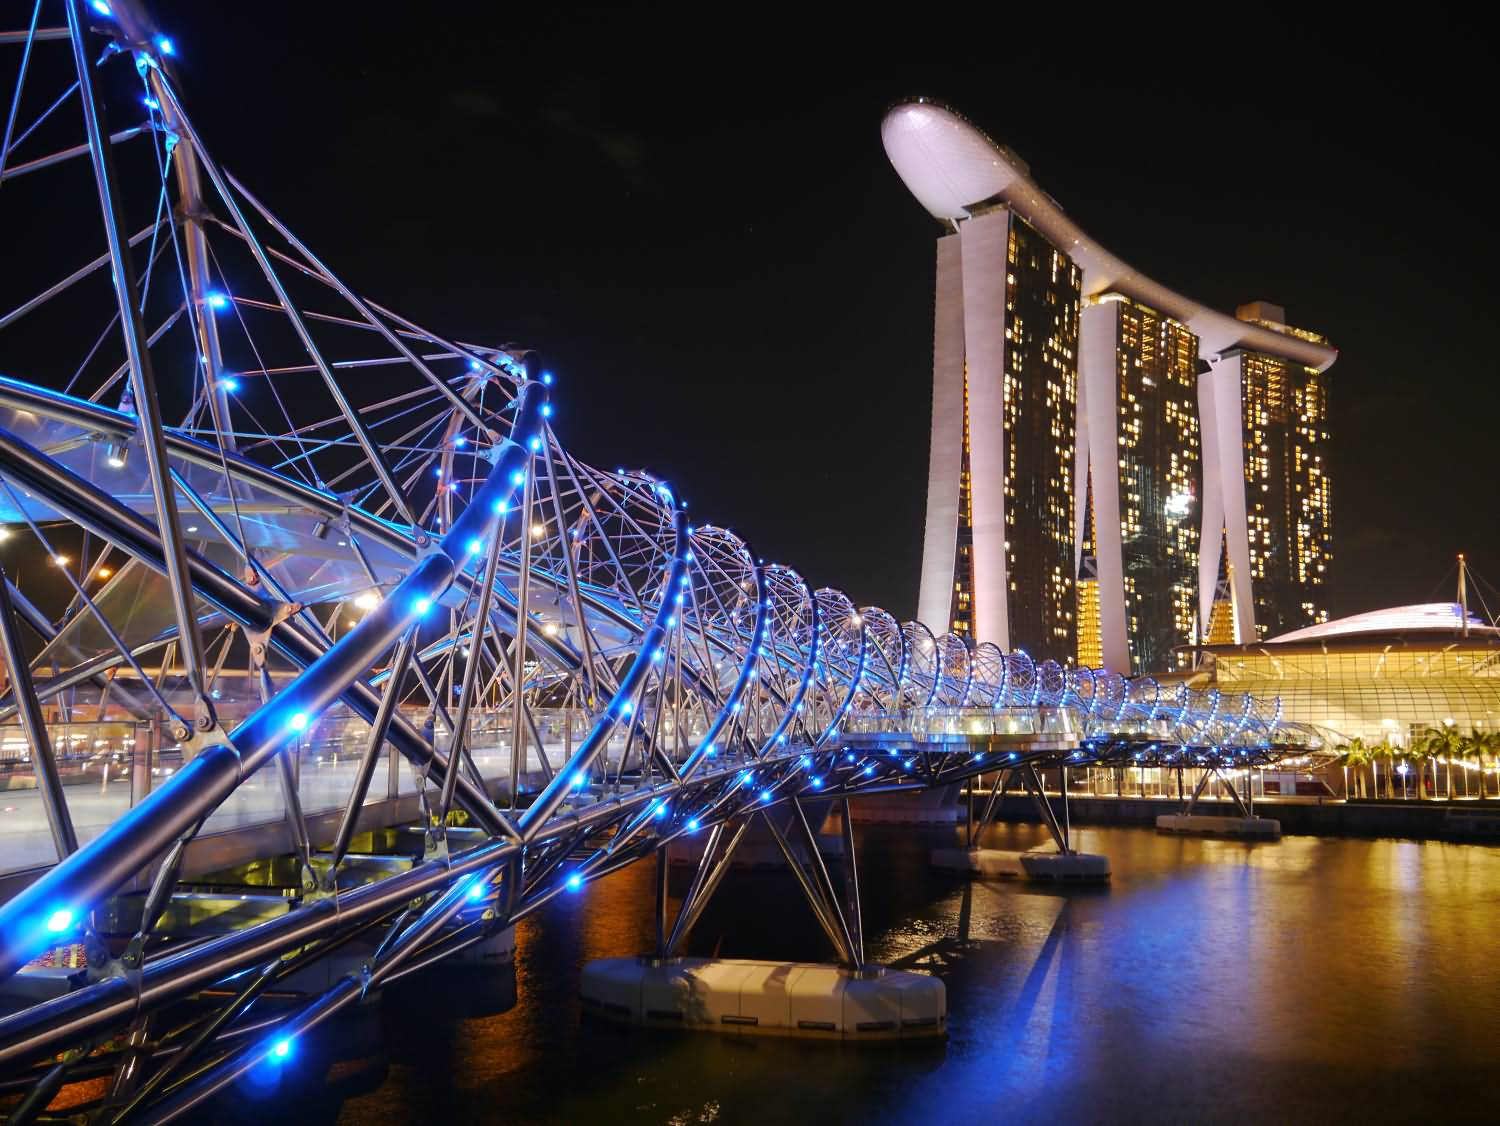 Marina bay sands design lin for Design bridge singapore